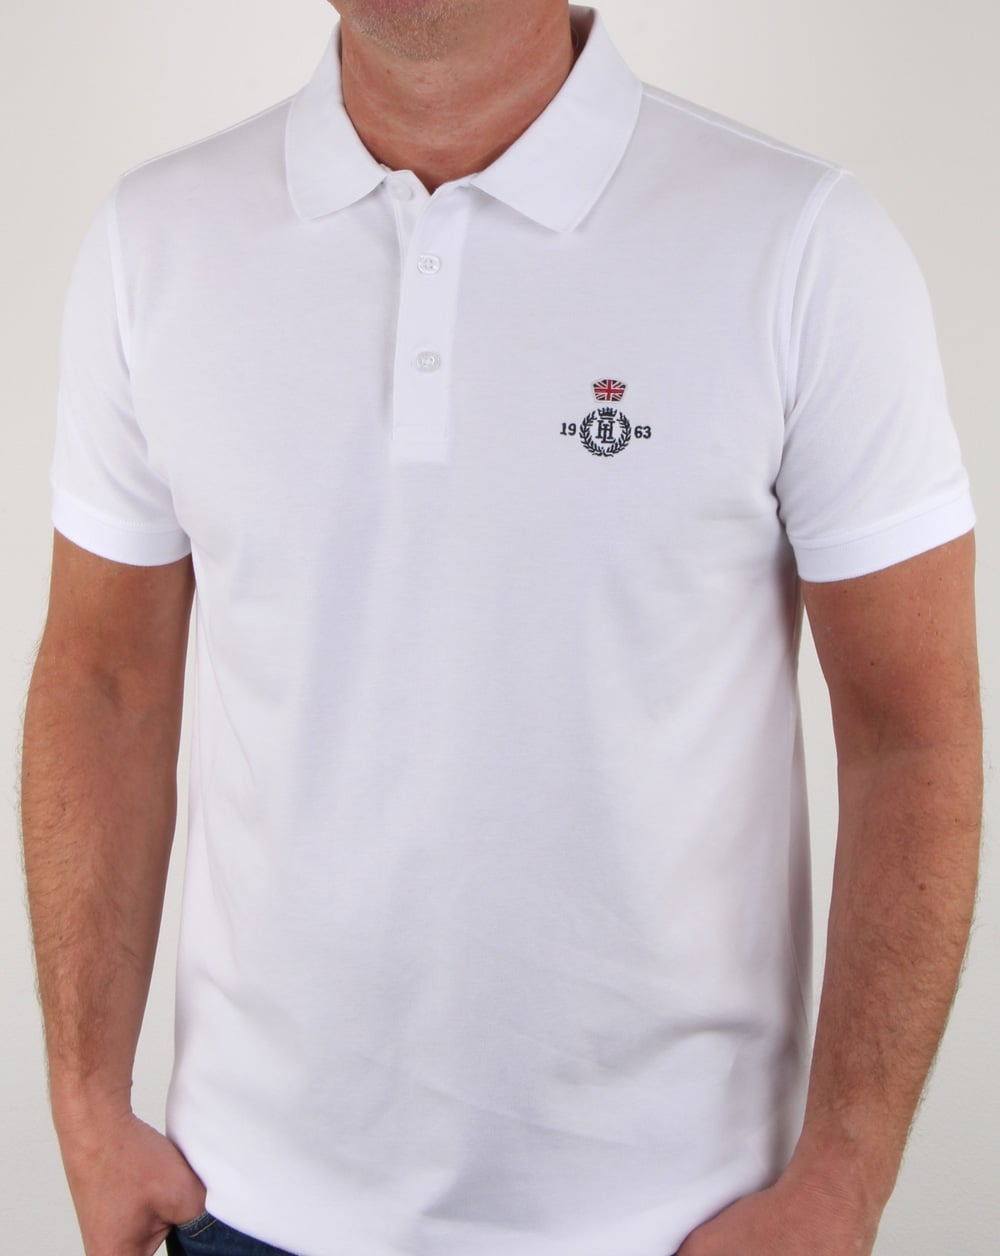 60f1bca9d Mens Branded Polo Shirts - DREAMWORKS